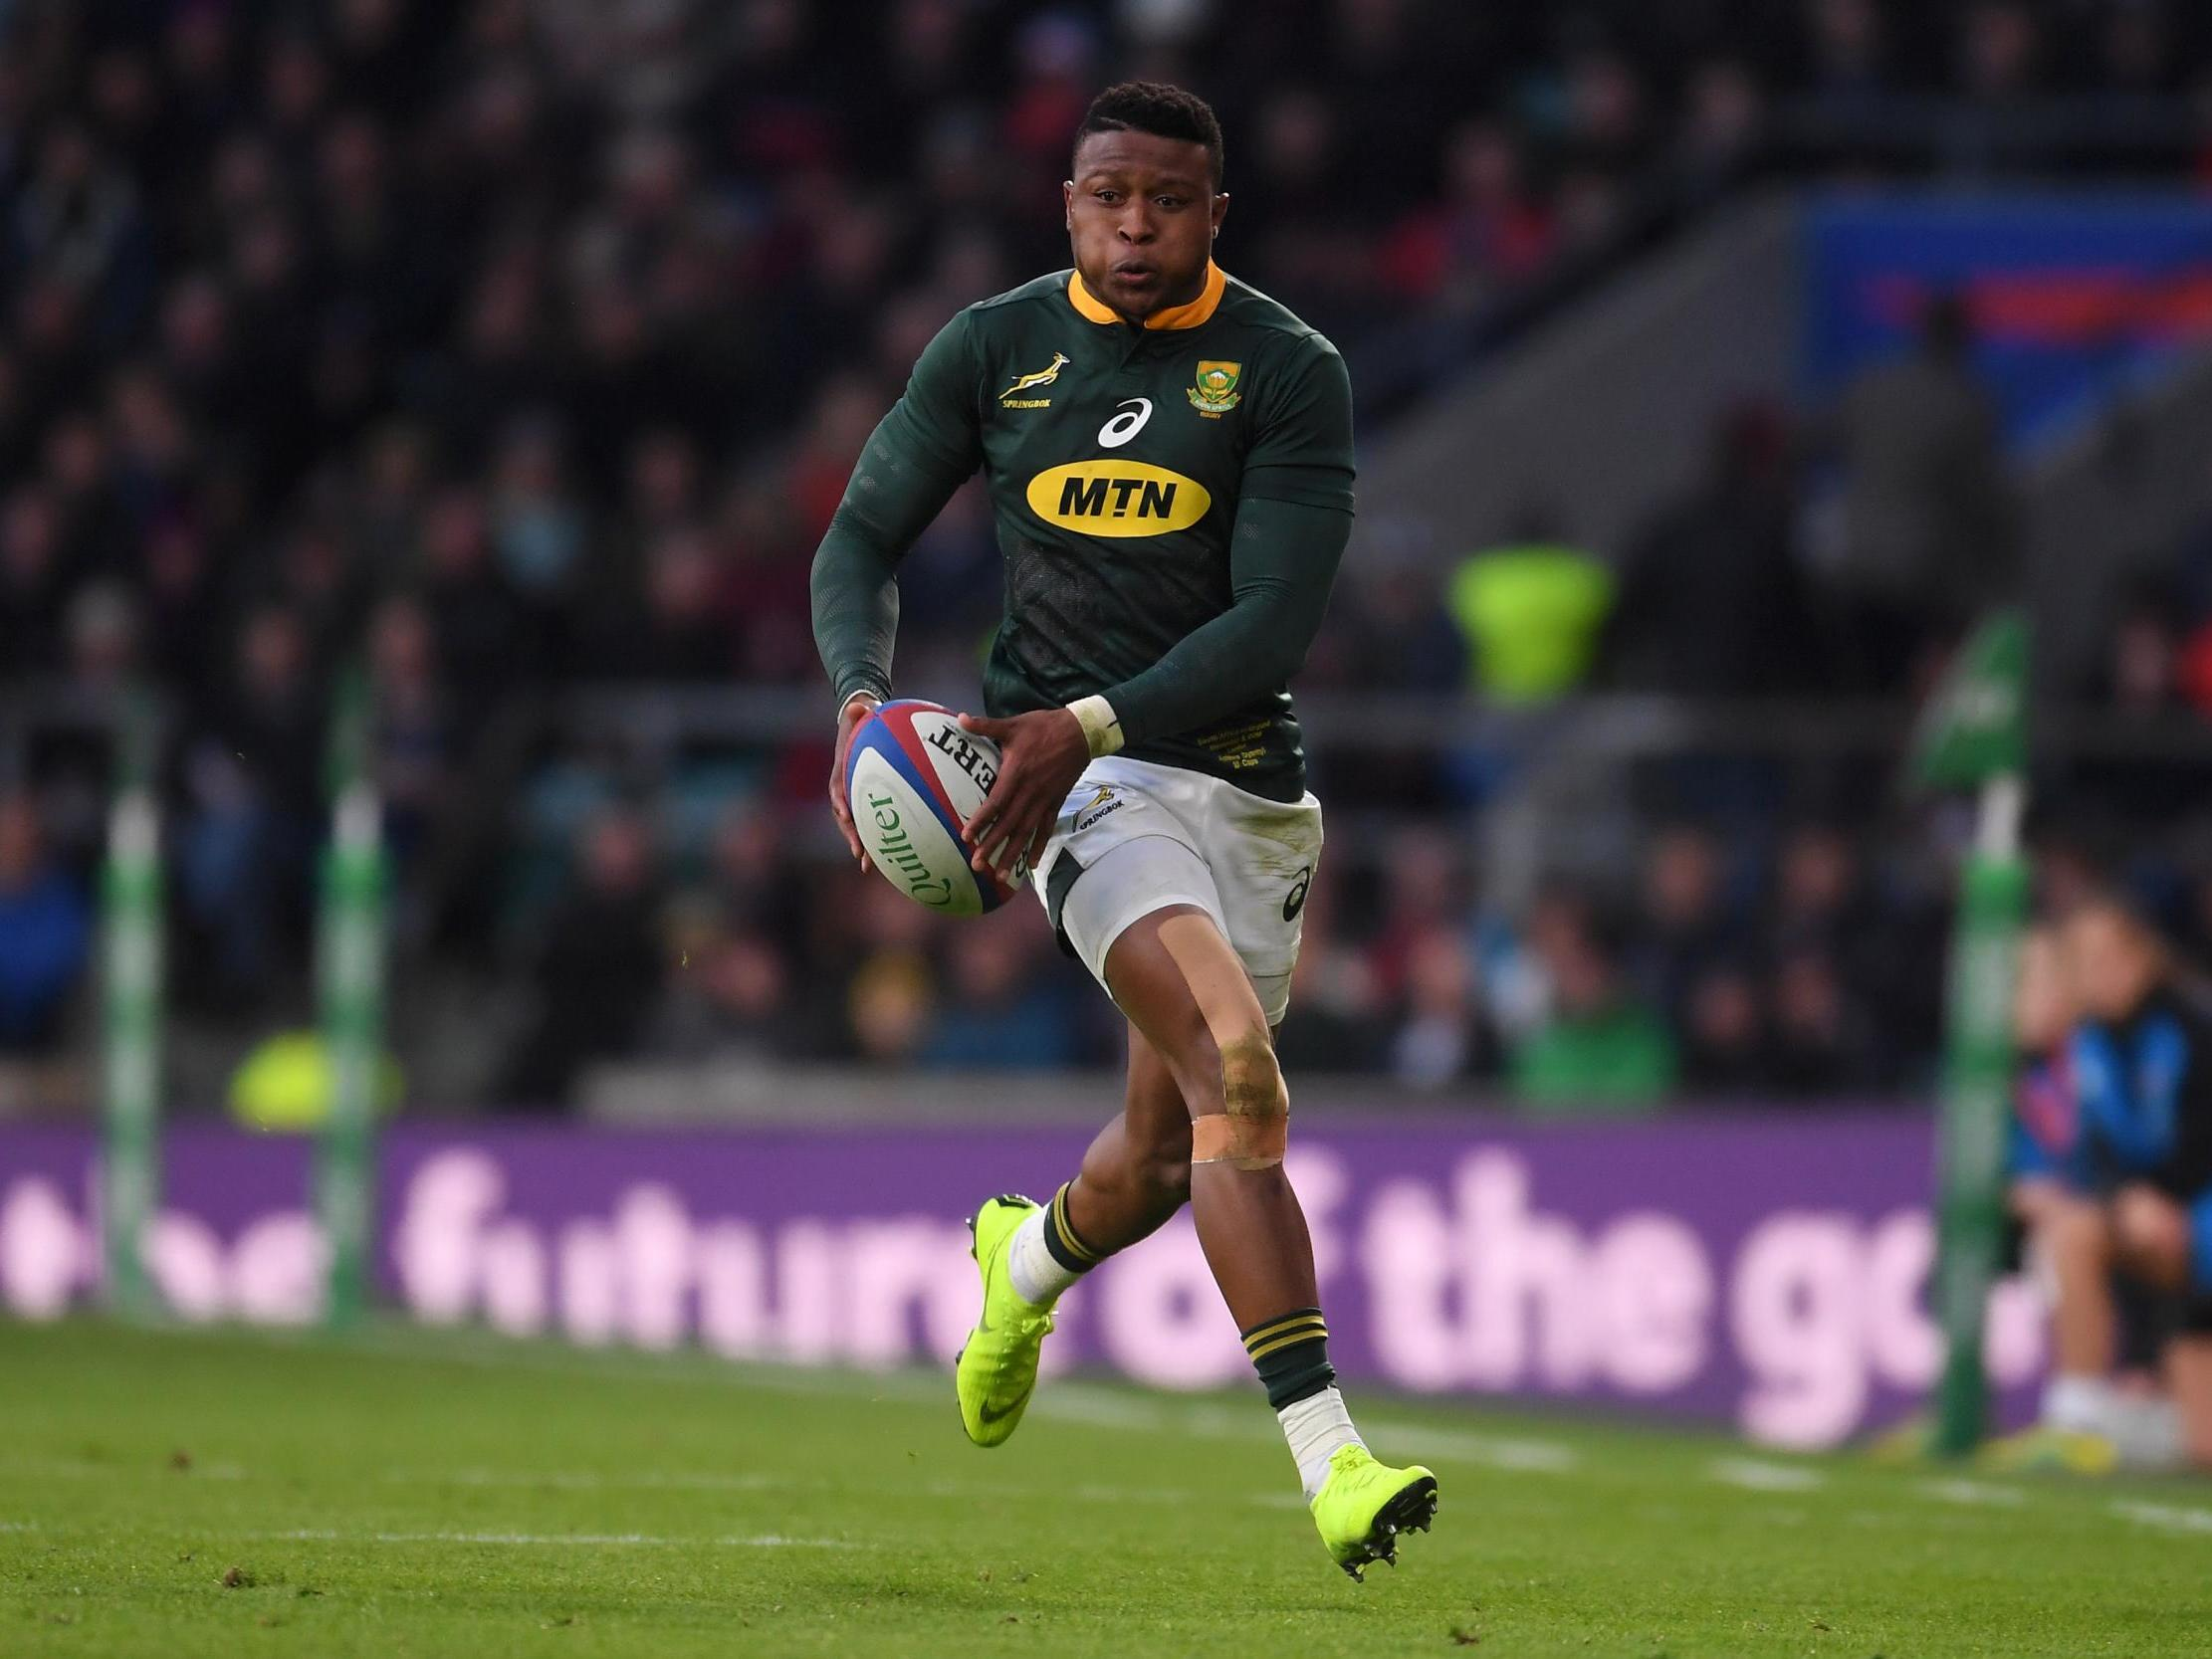 Aphiwe Dyantyi: South Africa rugby player fails drugs test